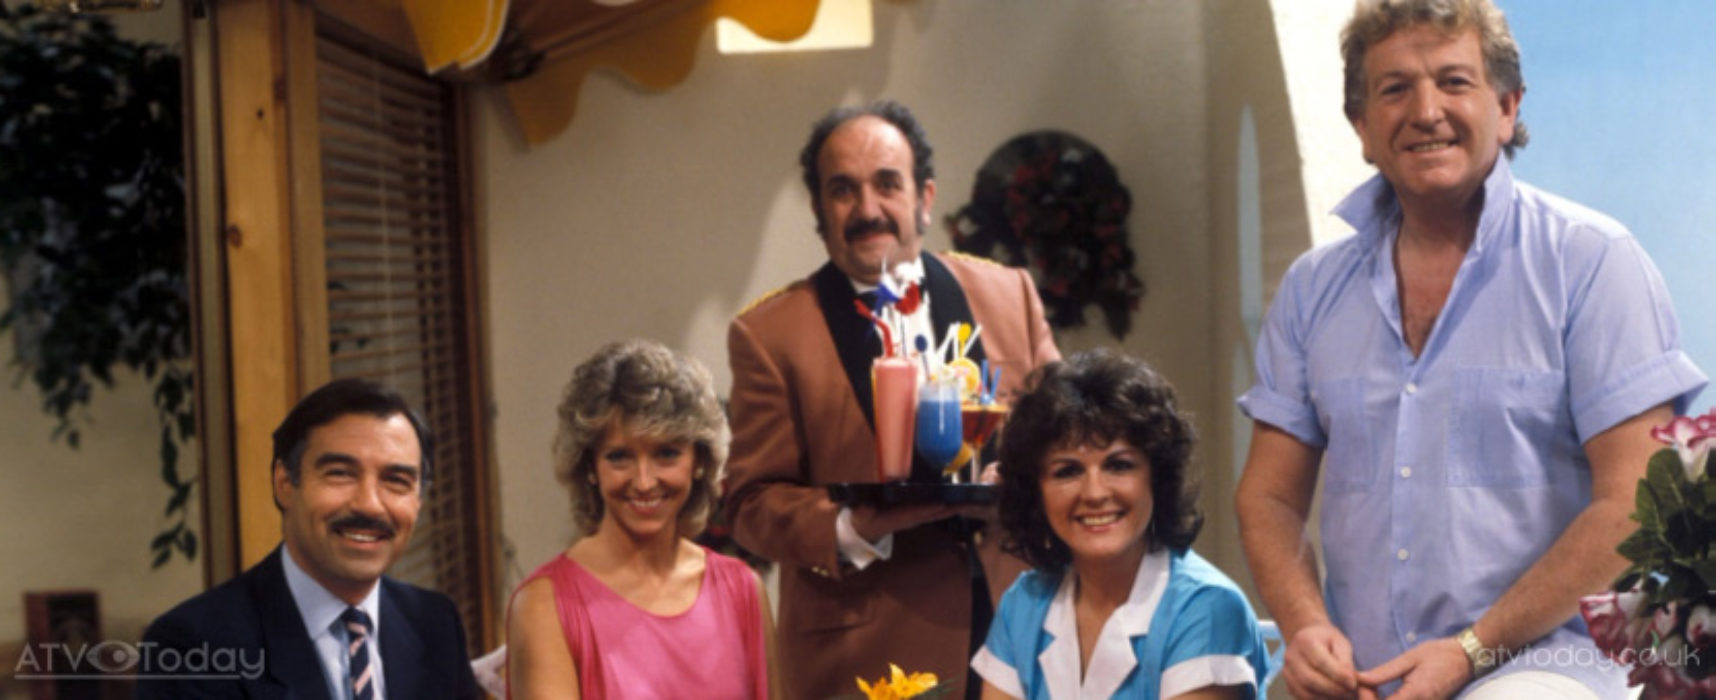 ITV3 to walk through classic comedy years